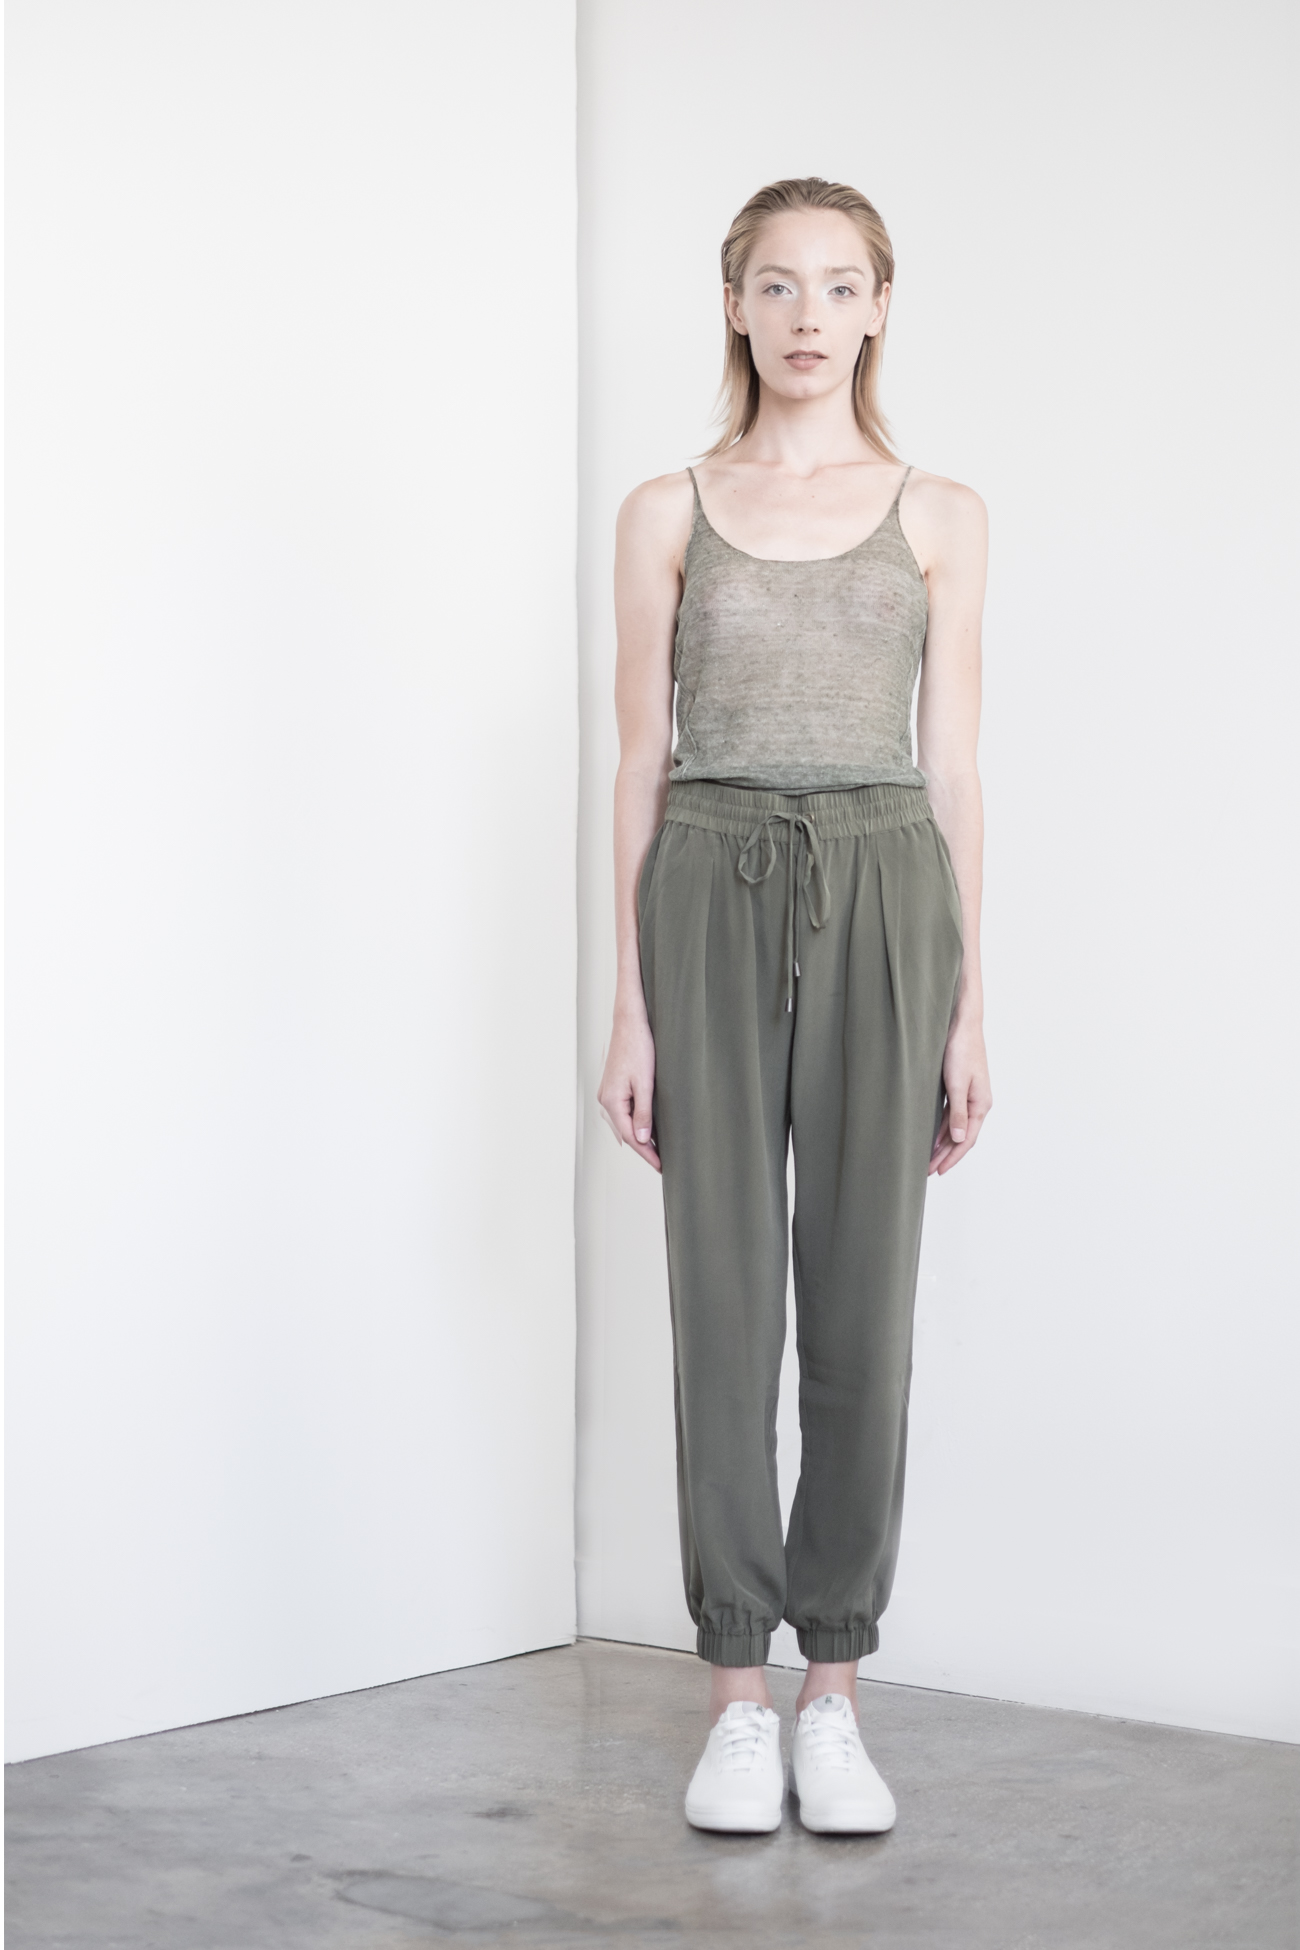 "LOOK 34   TOP:   2289  / Clover  -           0   0   2015-09-15T00:56:00Z   1   5   33   Rick Owens   1   1   37   14.0                       Normal   0             false   false   false     EN-US   JA   X-NONE                                                                                                                                                                                                                                                                                                                                                                               /* Style Definitions */ table.MsoNormalTable 	{mso-style-name:""Table Normal""; 	mso-tstyle-rowband-size:0; 	mso-tstyle-colband-size:0; 	mso-style-noshow:yes; 	mso-style-priority:99; 	mso-style-parent:""""; 	mso-padding-alt:0in 5.4pt 0in 5.4pt; 	mso-para-margin:0in; 	mso-para-margin-bottom:.0001pt; 	mso-pagination:widow-orphan; 	font-size:12.0pt; 	font-family:Cambria; 	mso-ascii-font-family:Cambria; 	mso-ascii-theme-font:minor-latin; 	mso-hansi-font-family:Cambria; 	mso-hansi-theme-font:minor-latin;}       Sleeveless fine gauge Italian linen.     WS:  58    BOTTOM:   2203  / Bone -    Jogger pants in 100% Silk.  WS:  123"